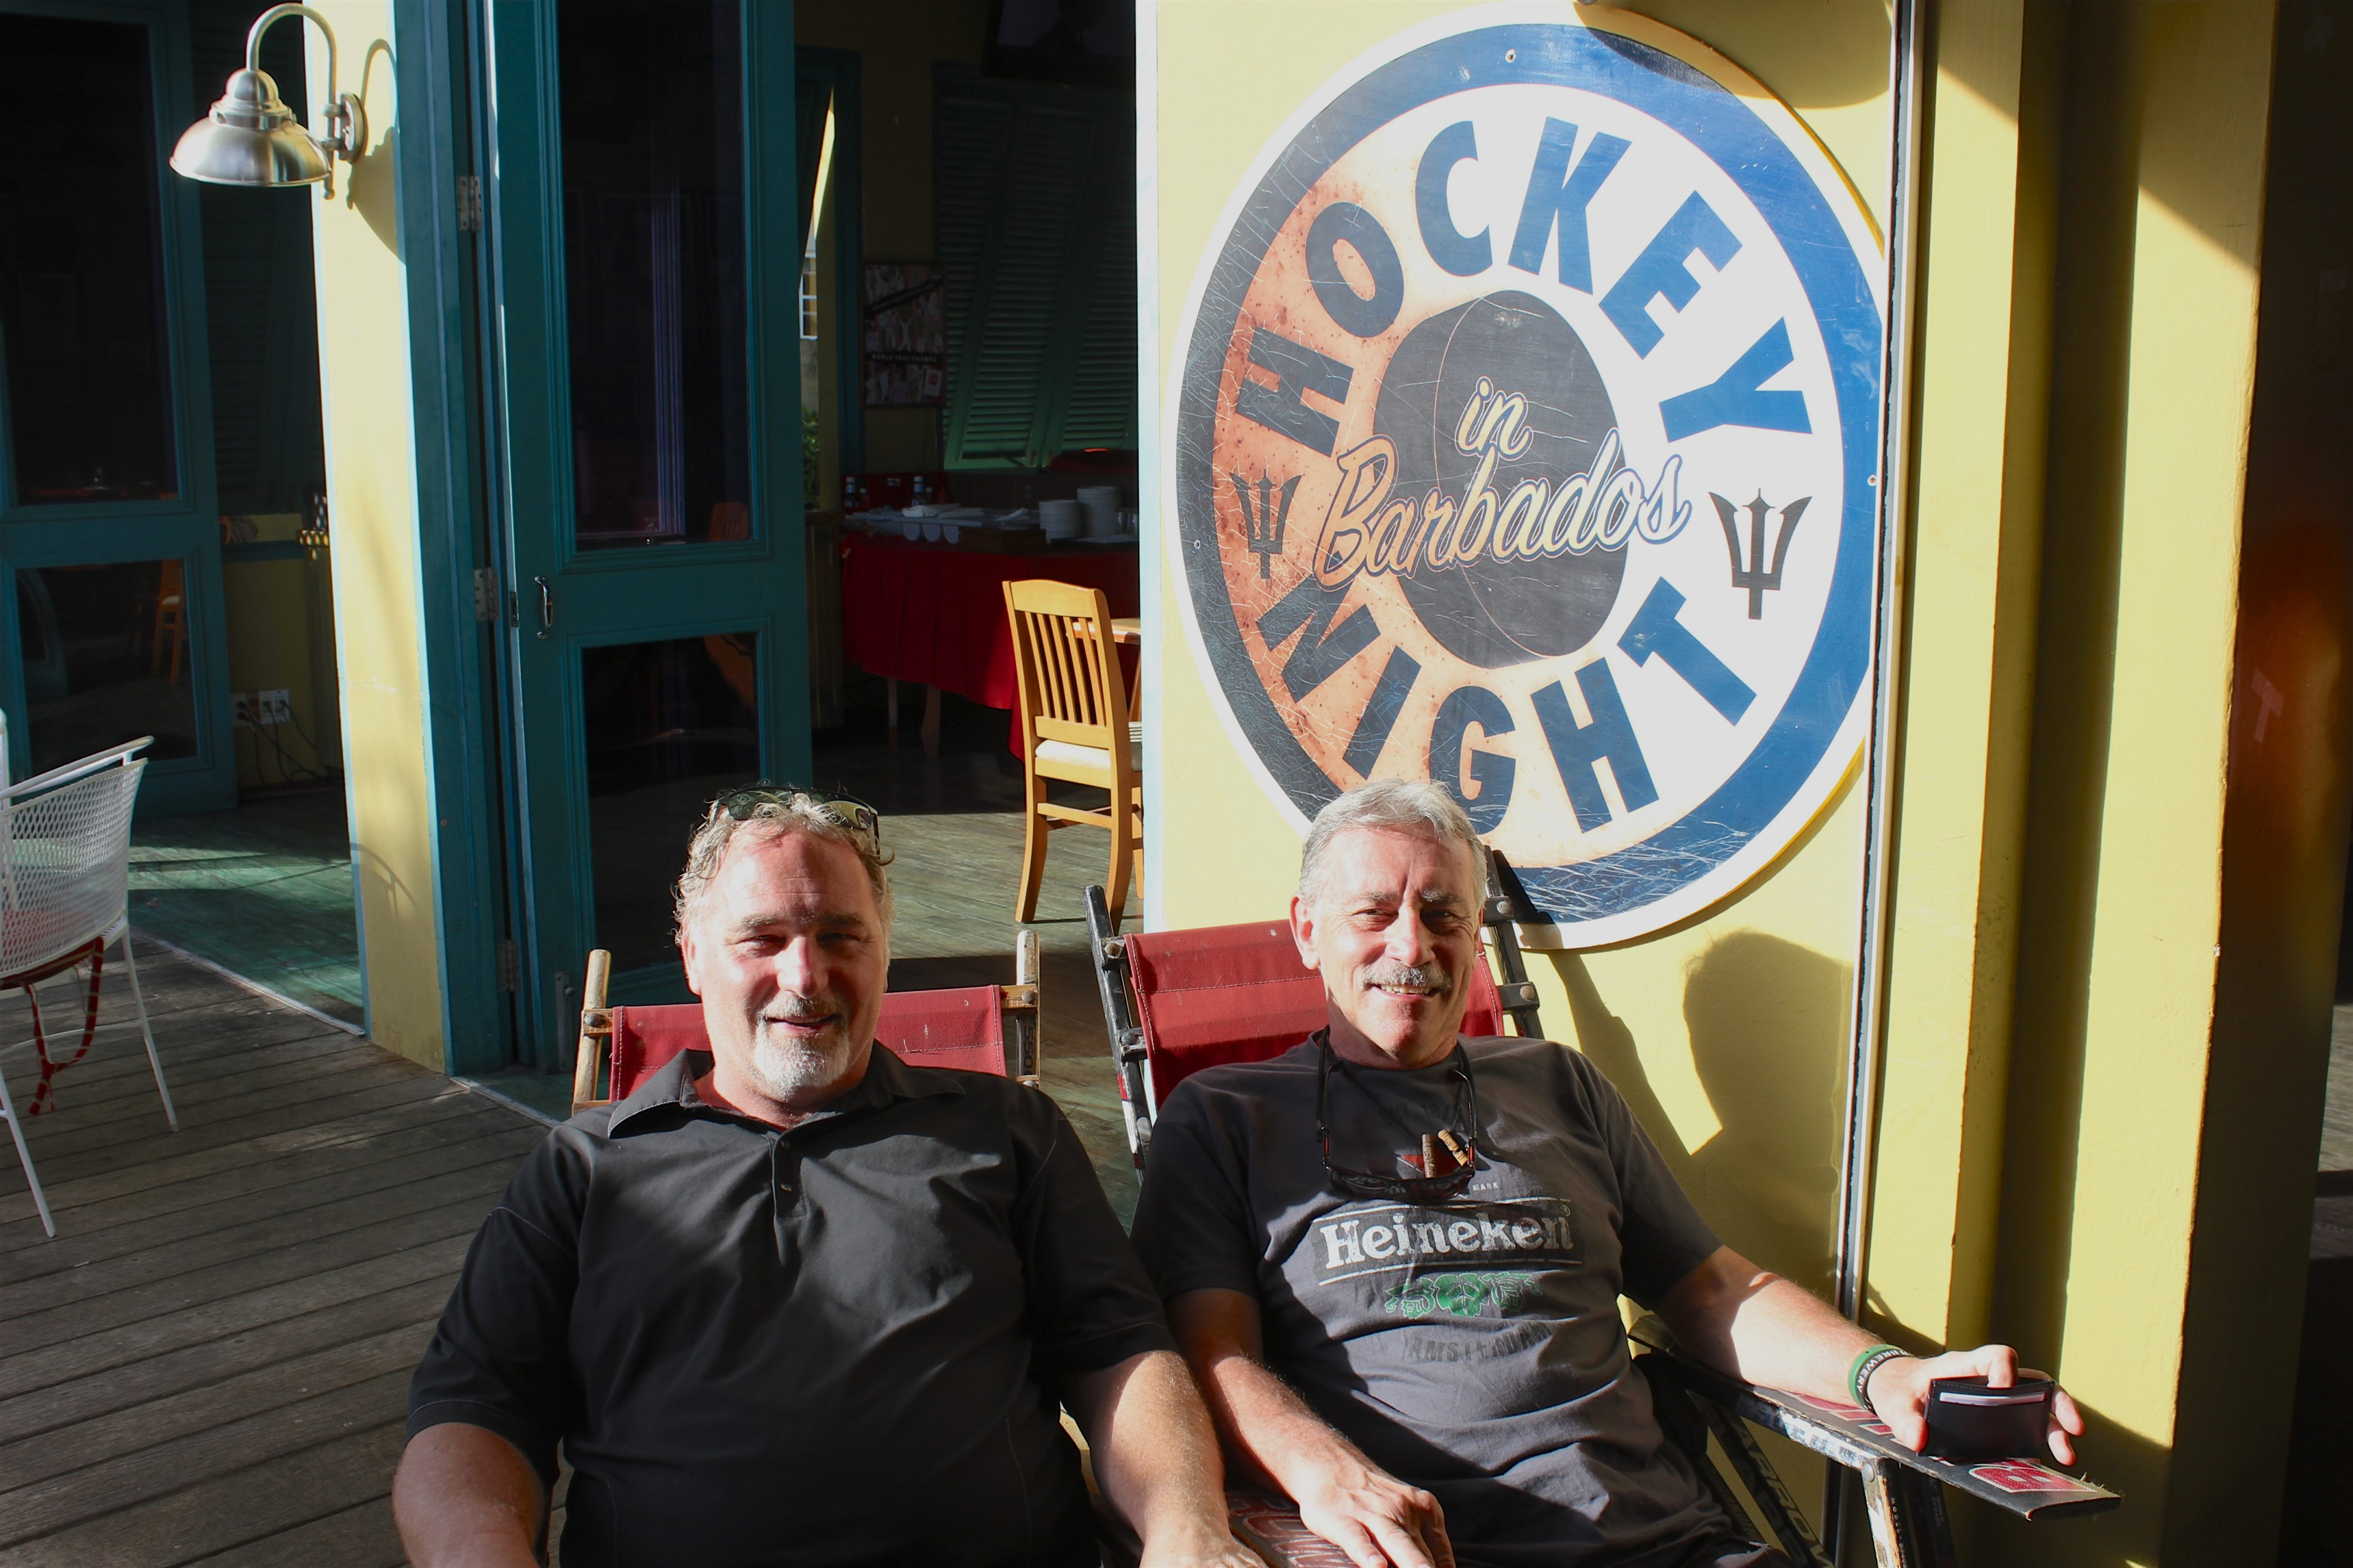 Winchester Travel Agents and Hockey Week organizers Al Armstrong, left, and Owen Shortt. Photo by Kimberley Johnson, Ottawa Magazine.